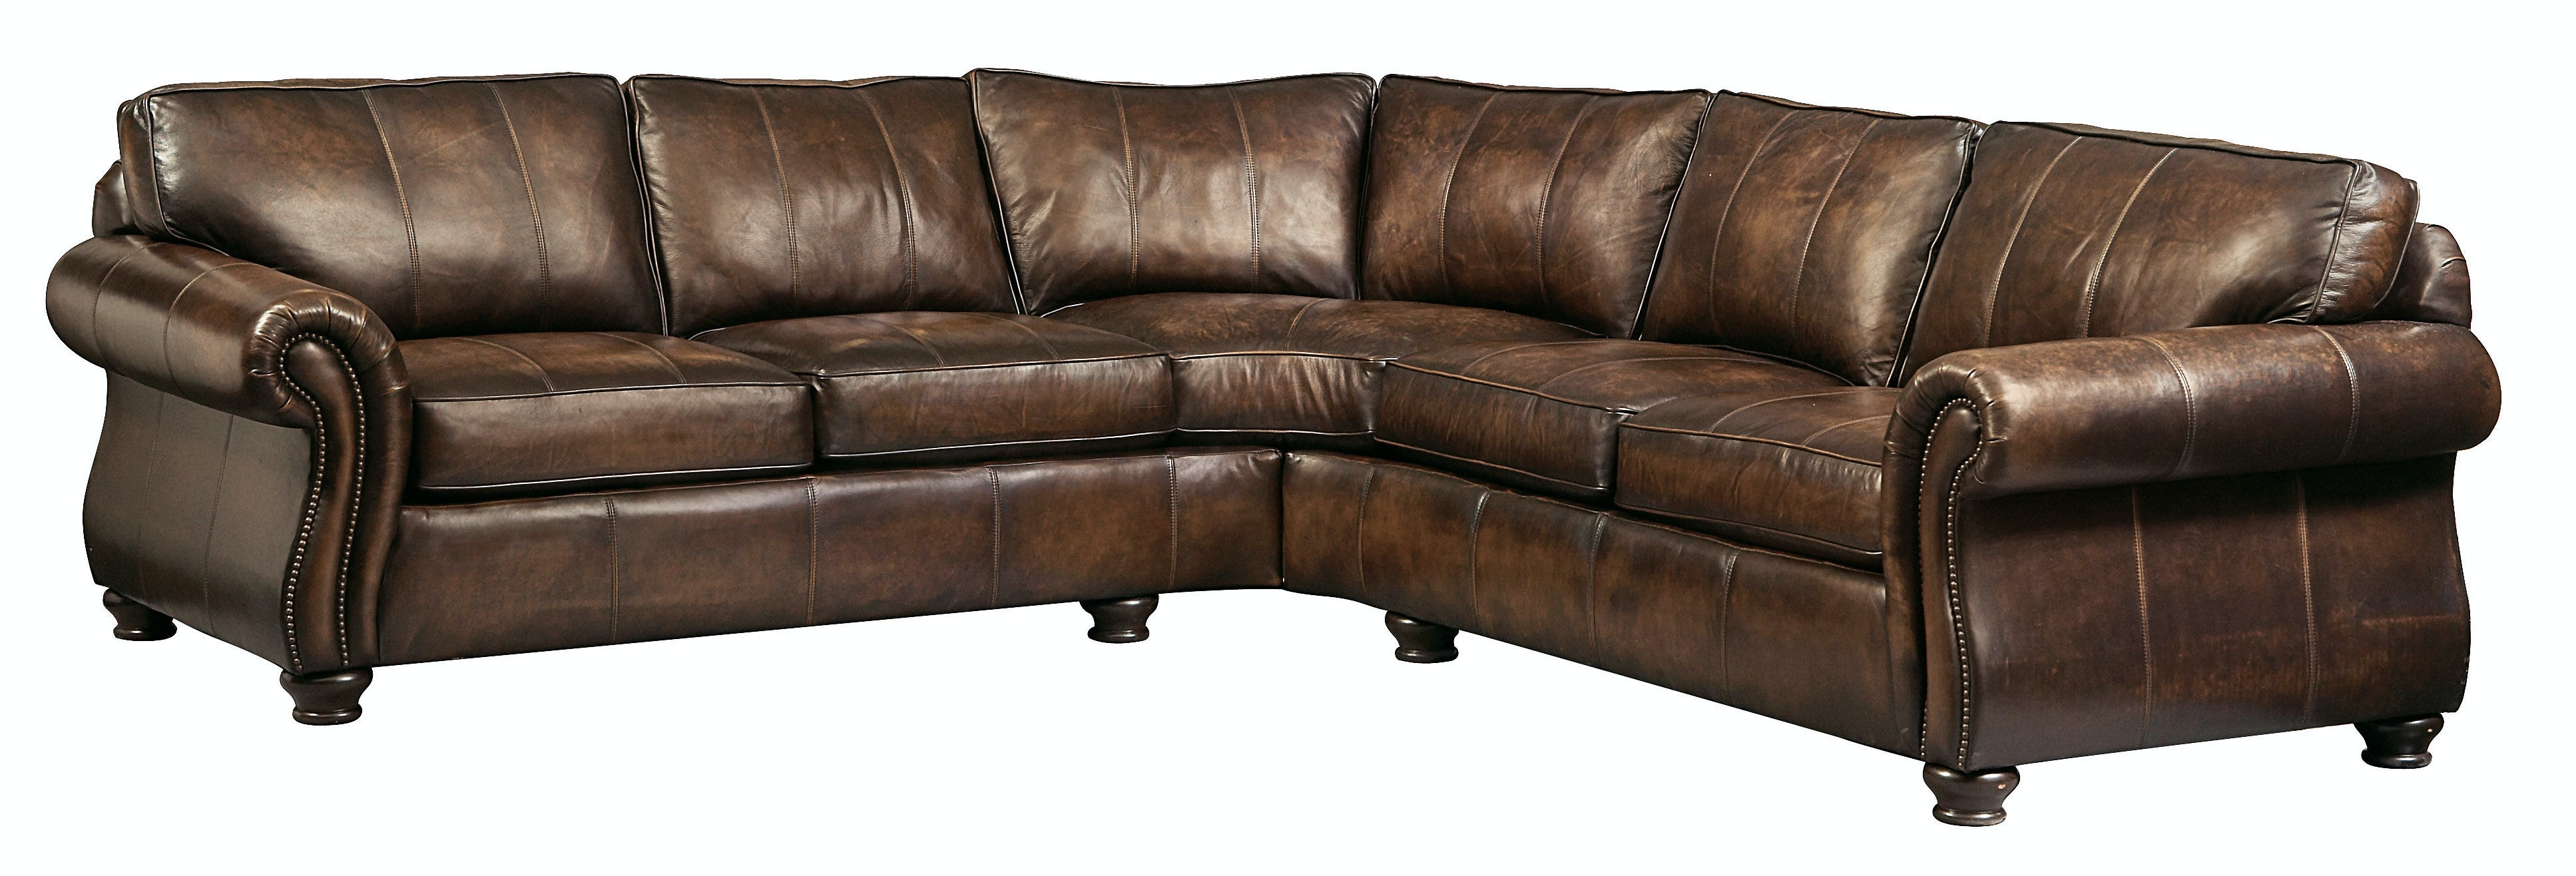 Bernhardt leather sofa for sale full size of sofamid for Where to buy bernhardt furniture online